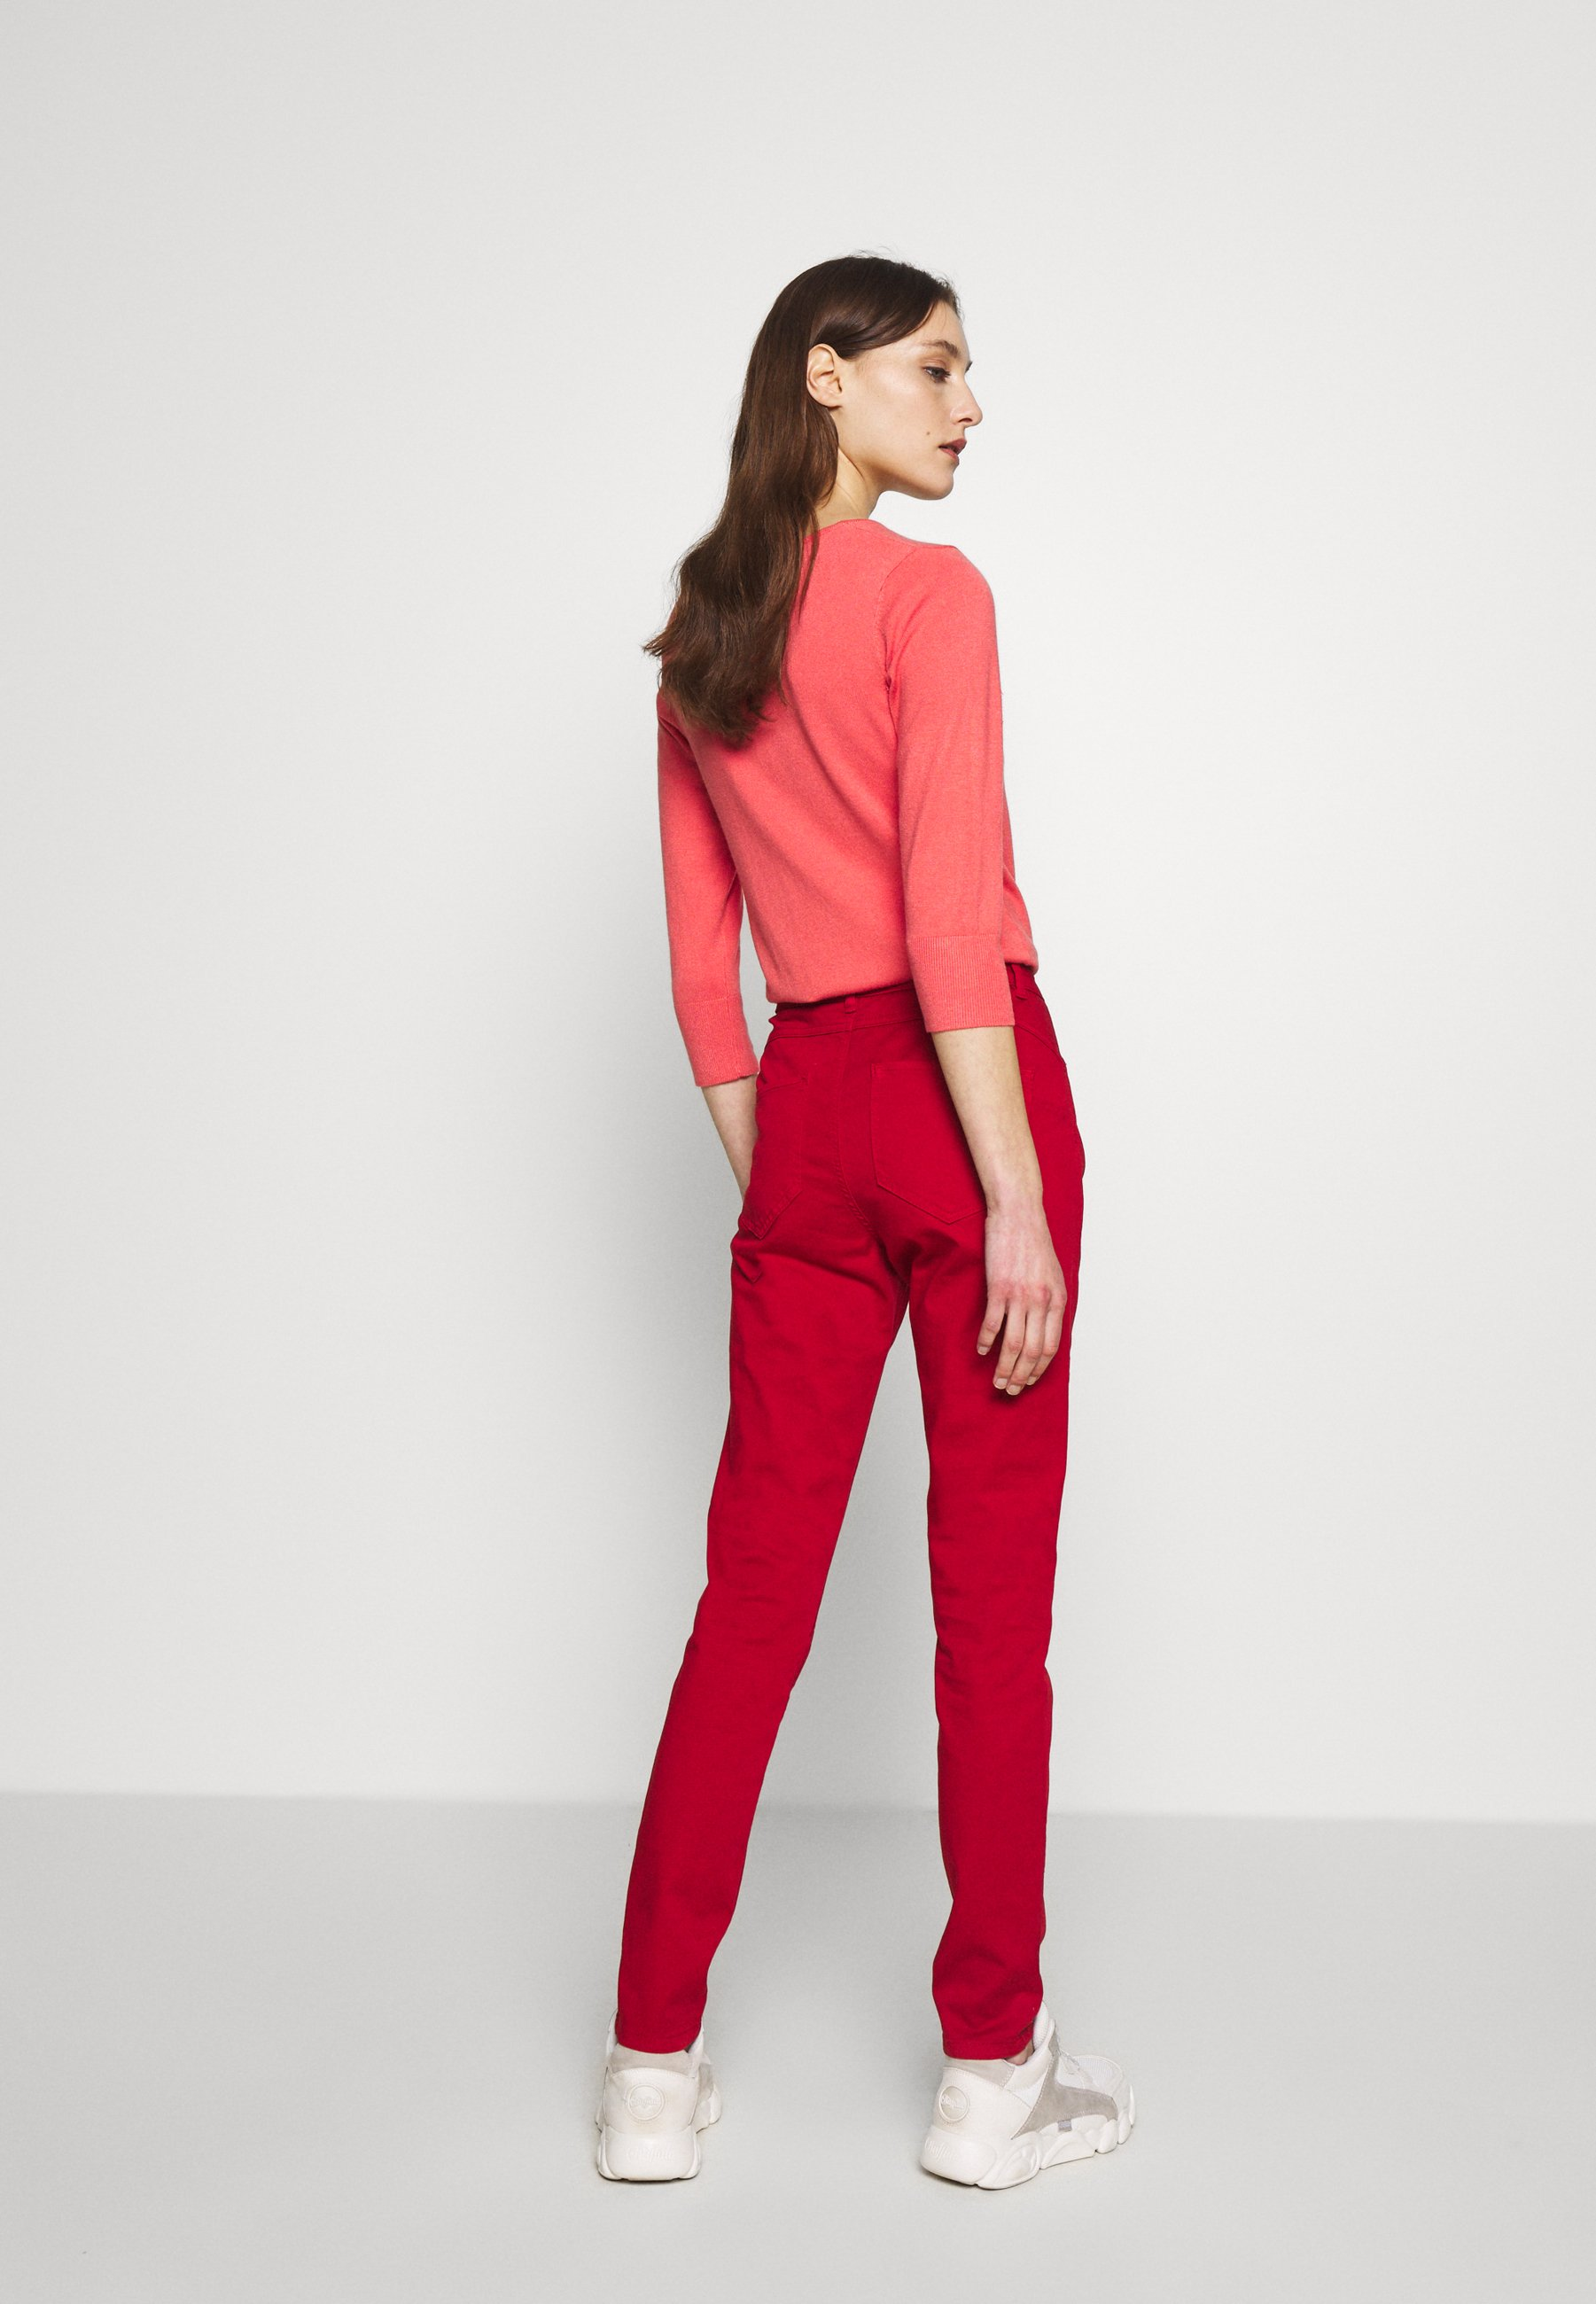 Benetton Trousers - Jeans Skinny Fit Red